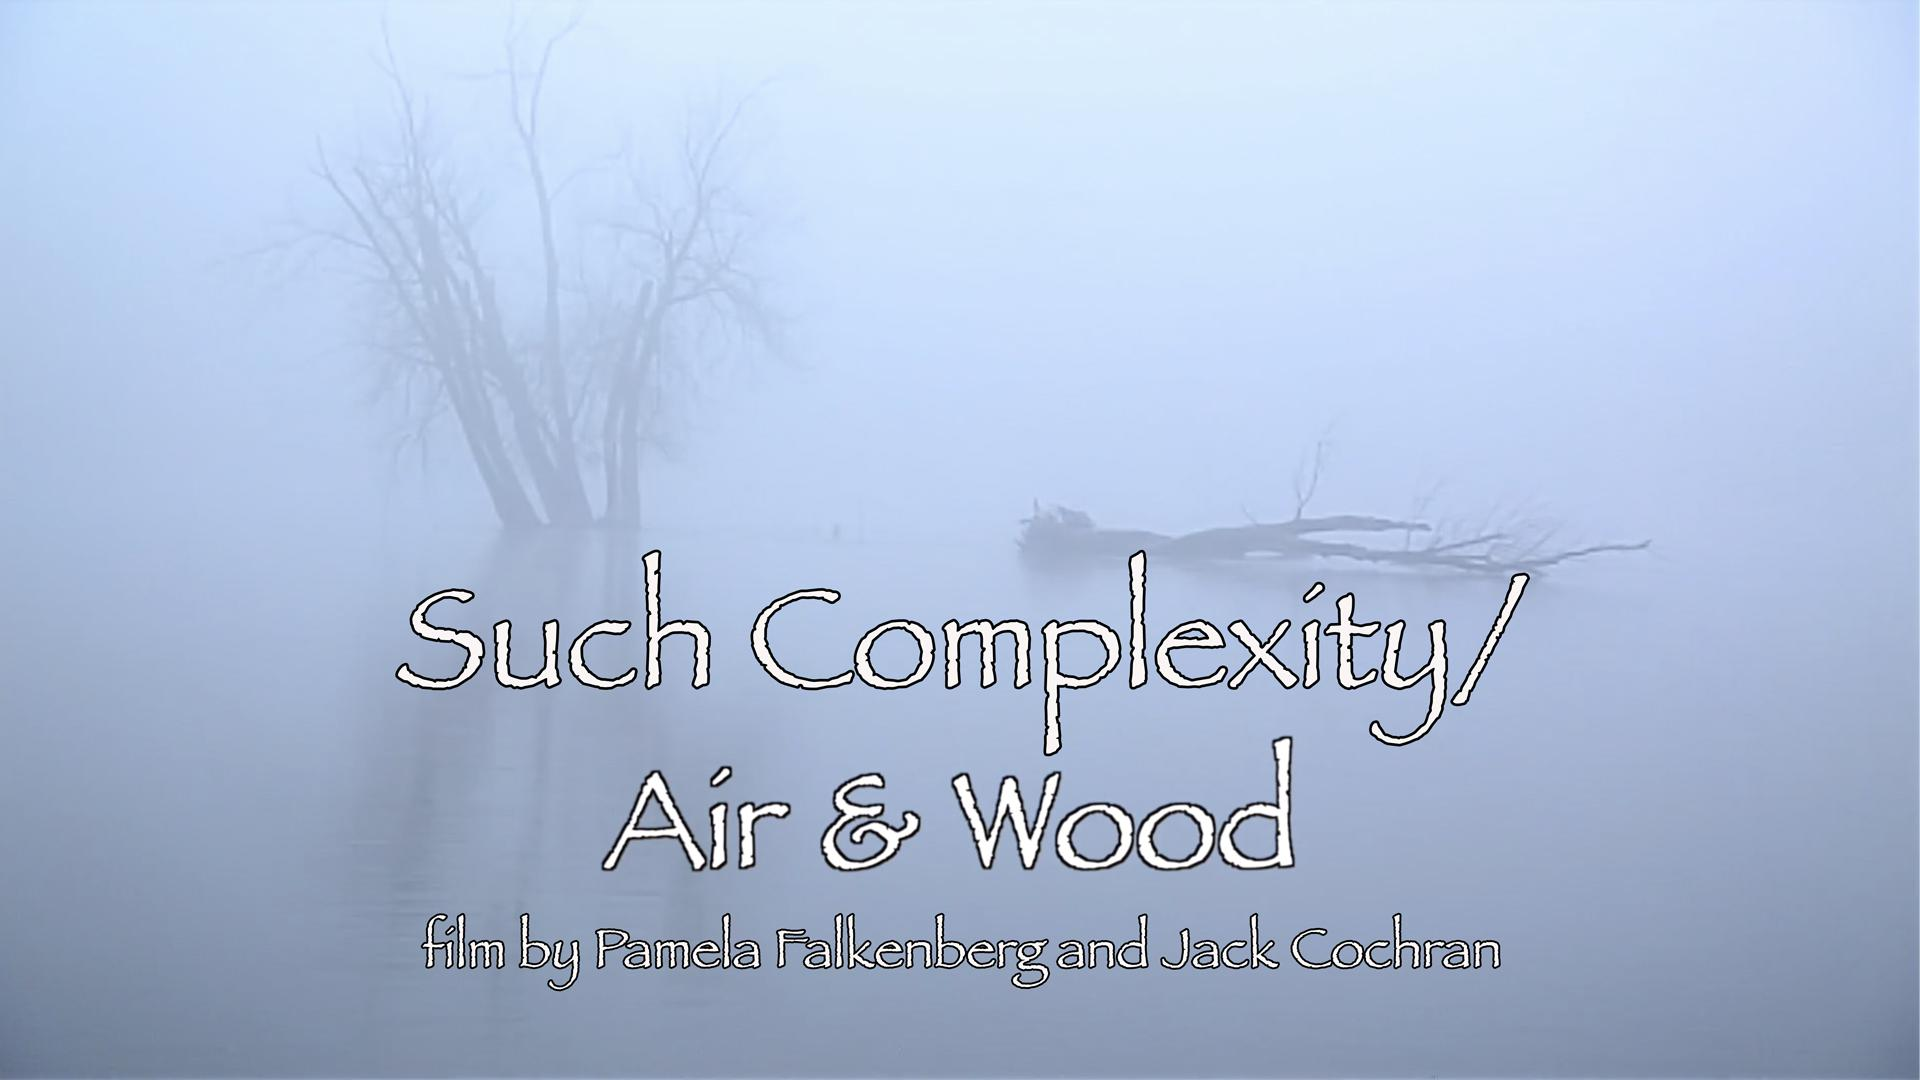 Such Complexity/Air & Wood